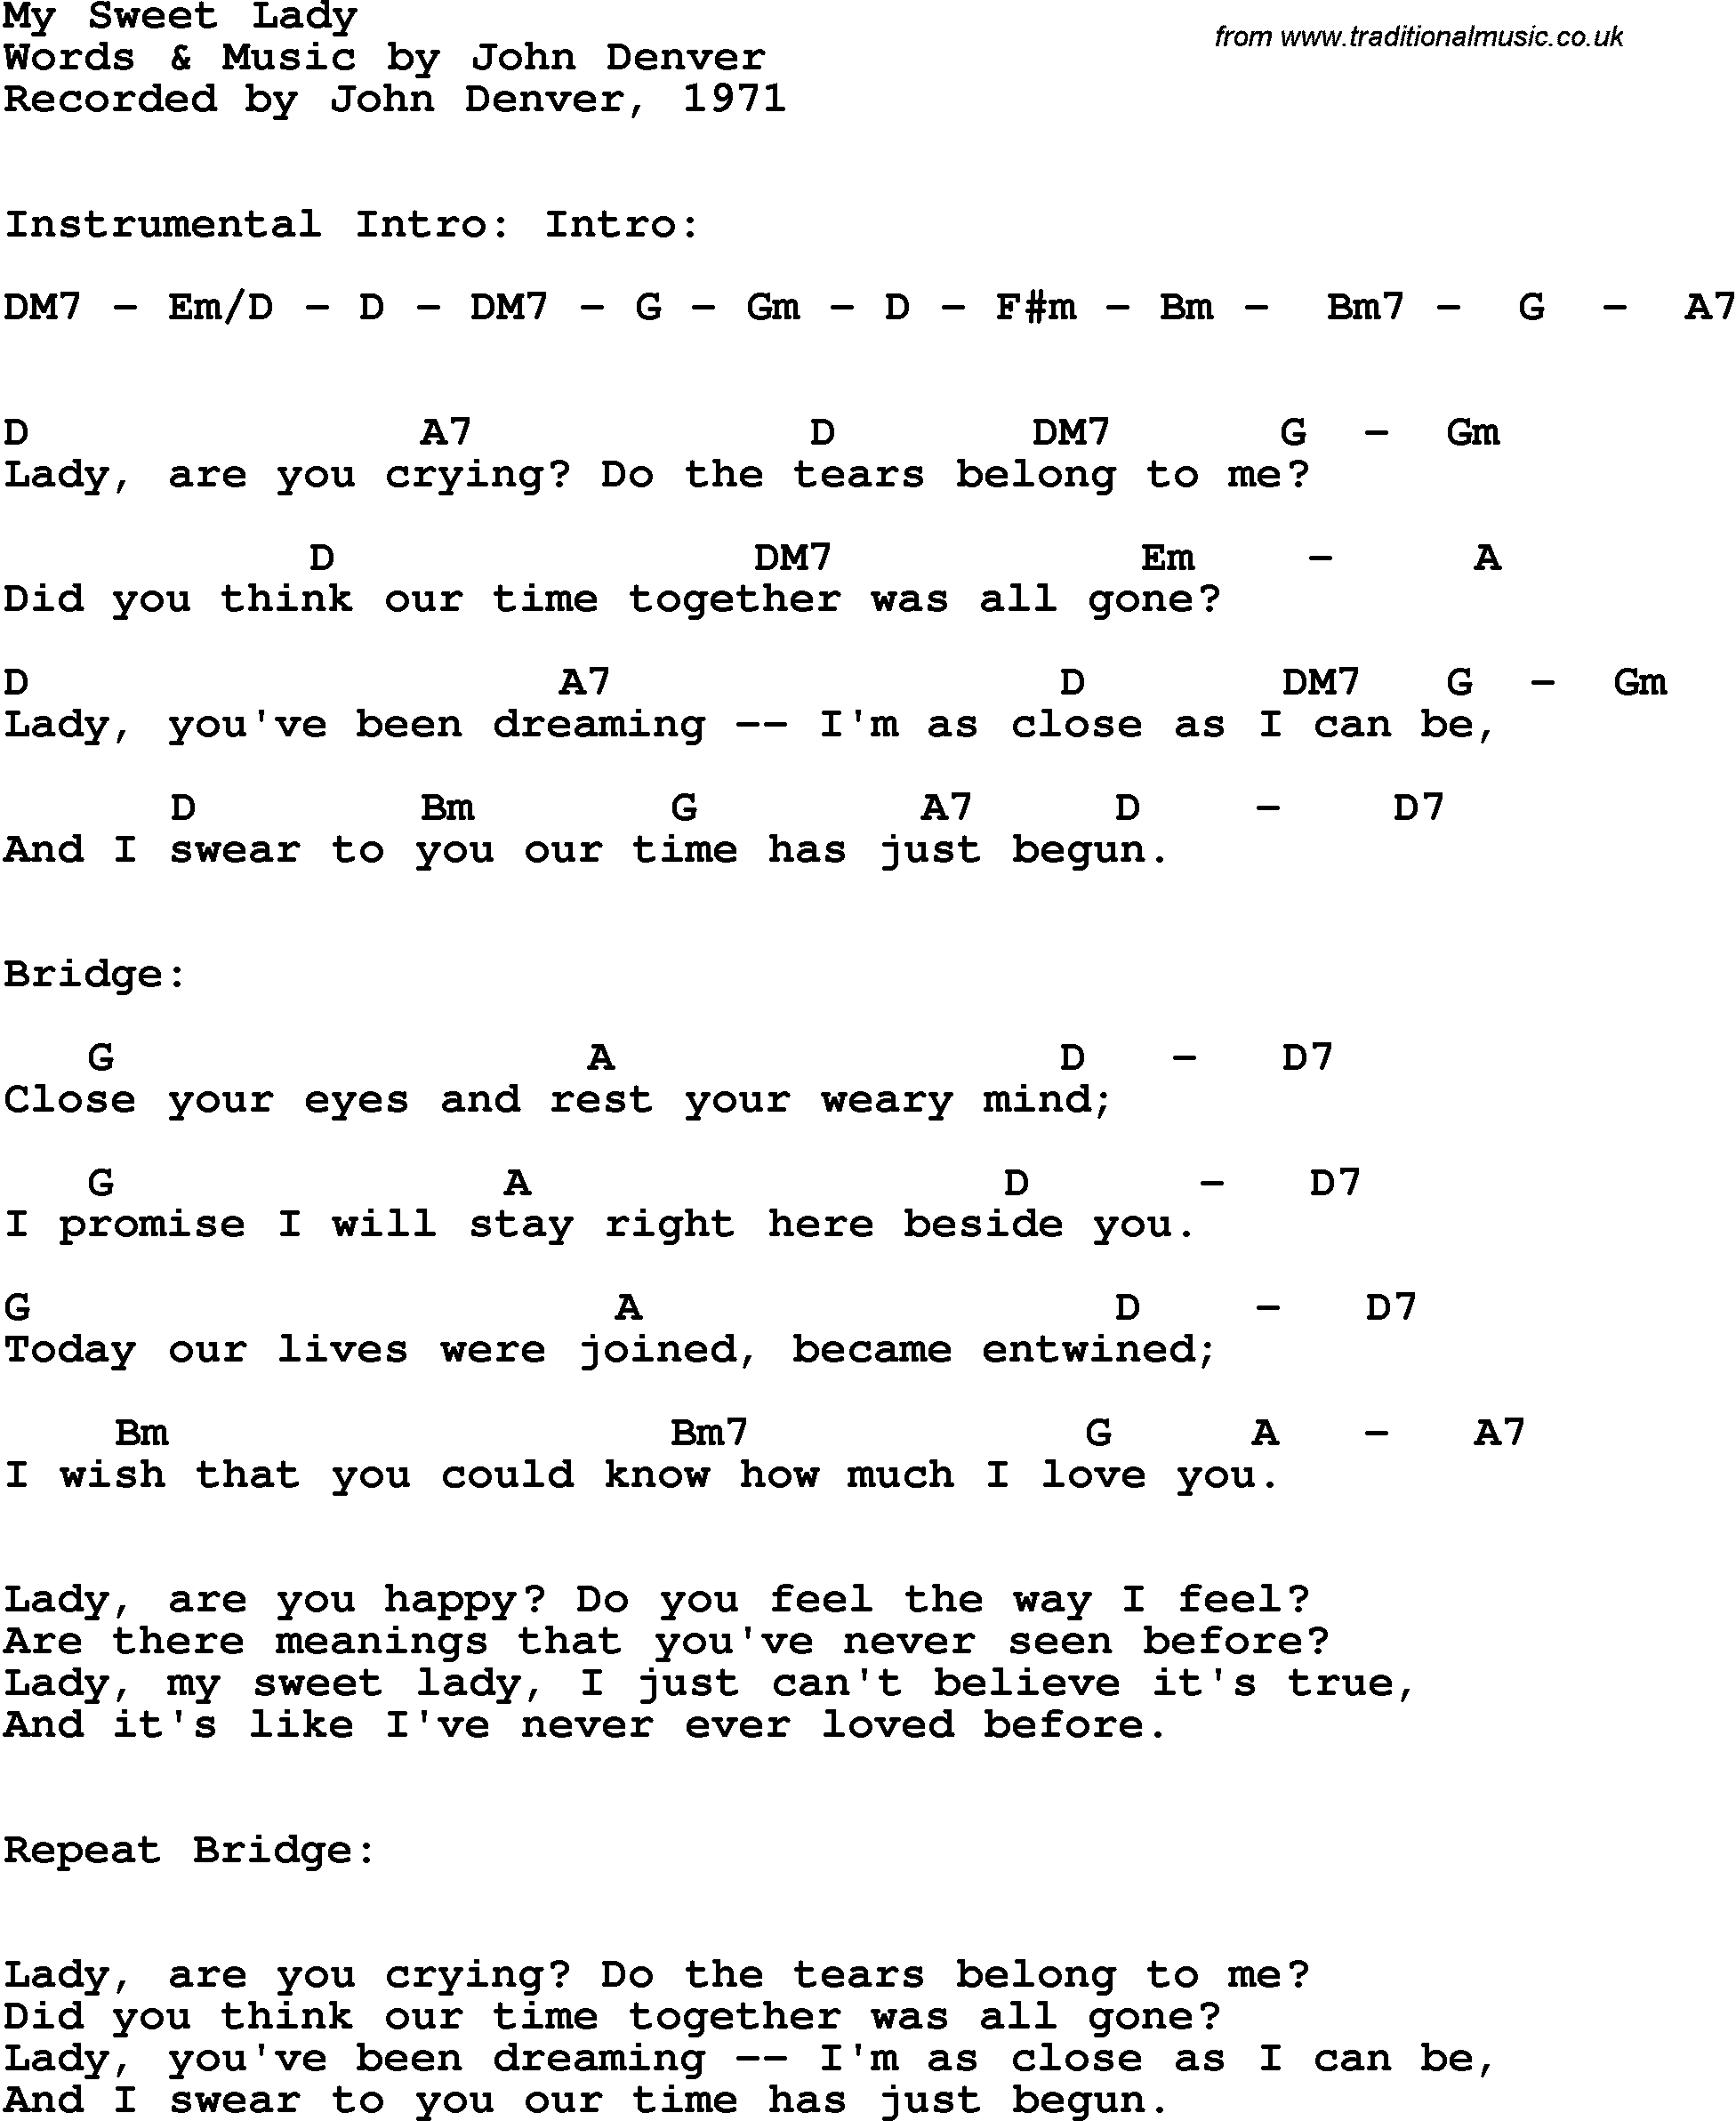 Song lyrics with guitar chords for My Sweet Lady - John